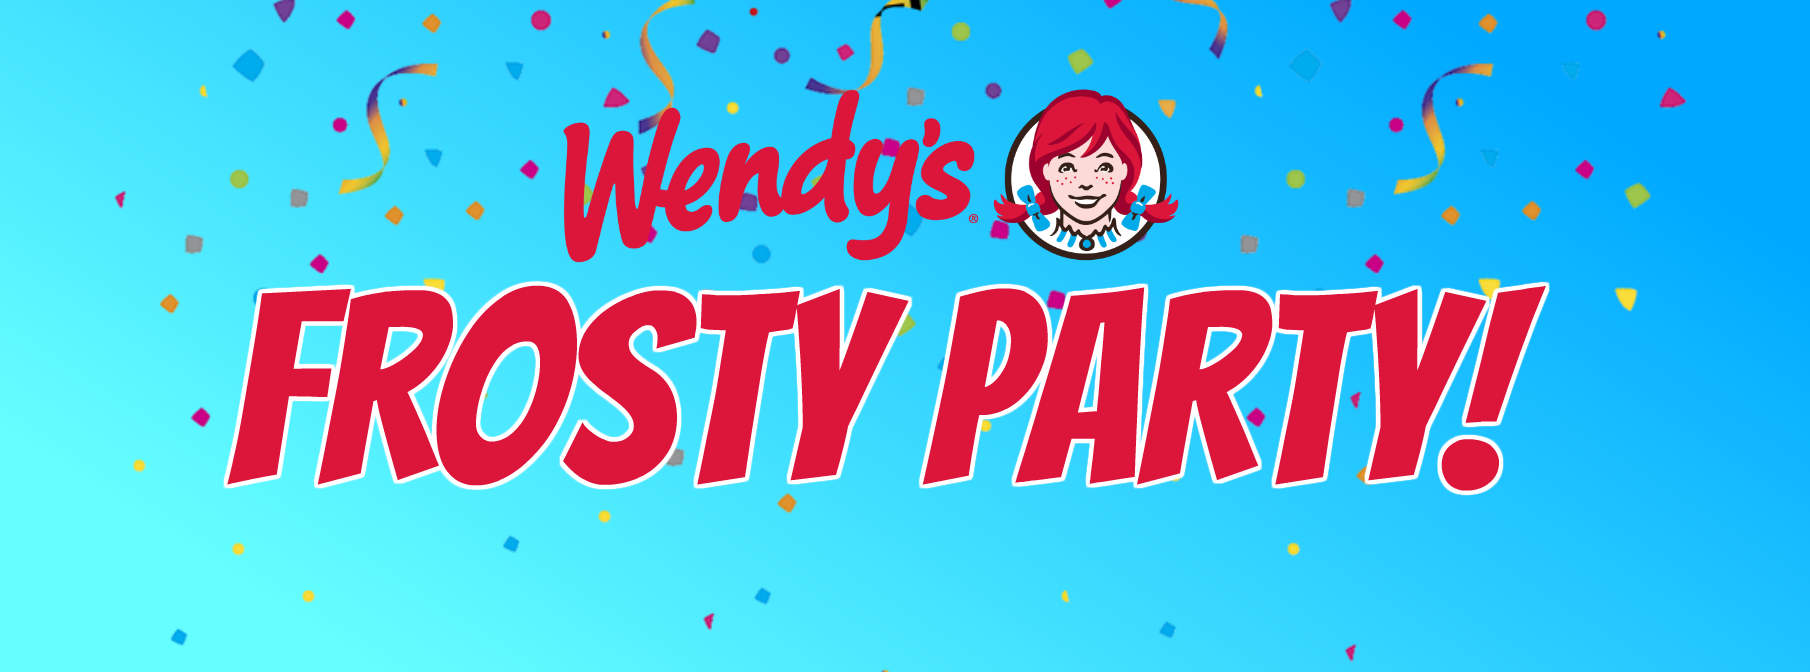 Wendy's Frosty Party